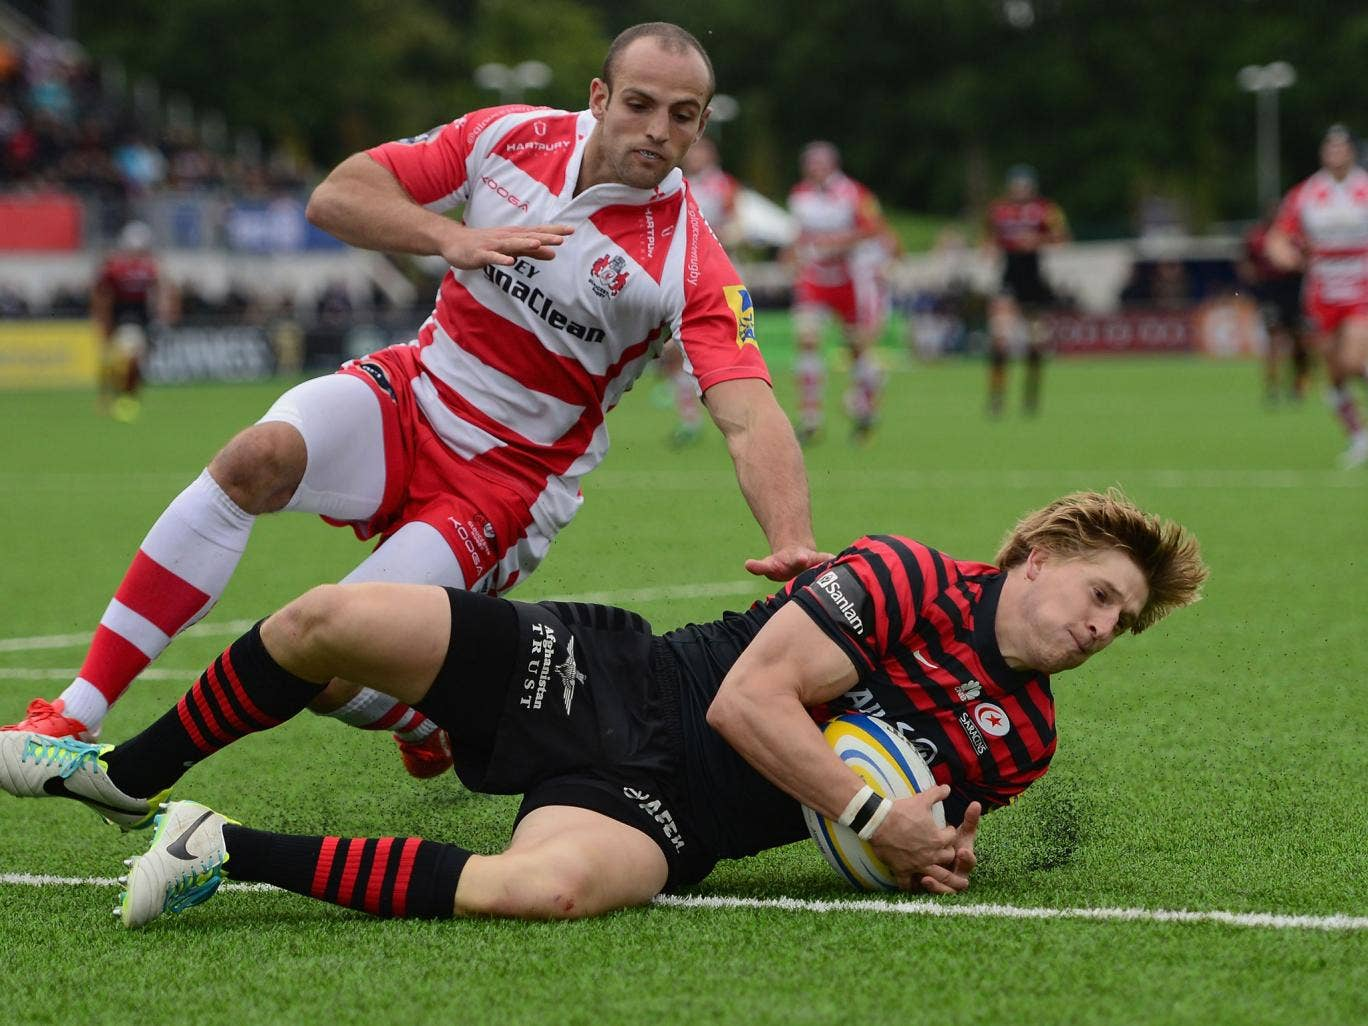 David Streetle of Saracens beats the tackle of Charlie Sharples of Gloucester to score a try